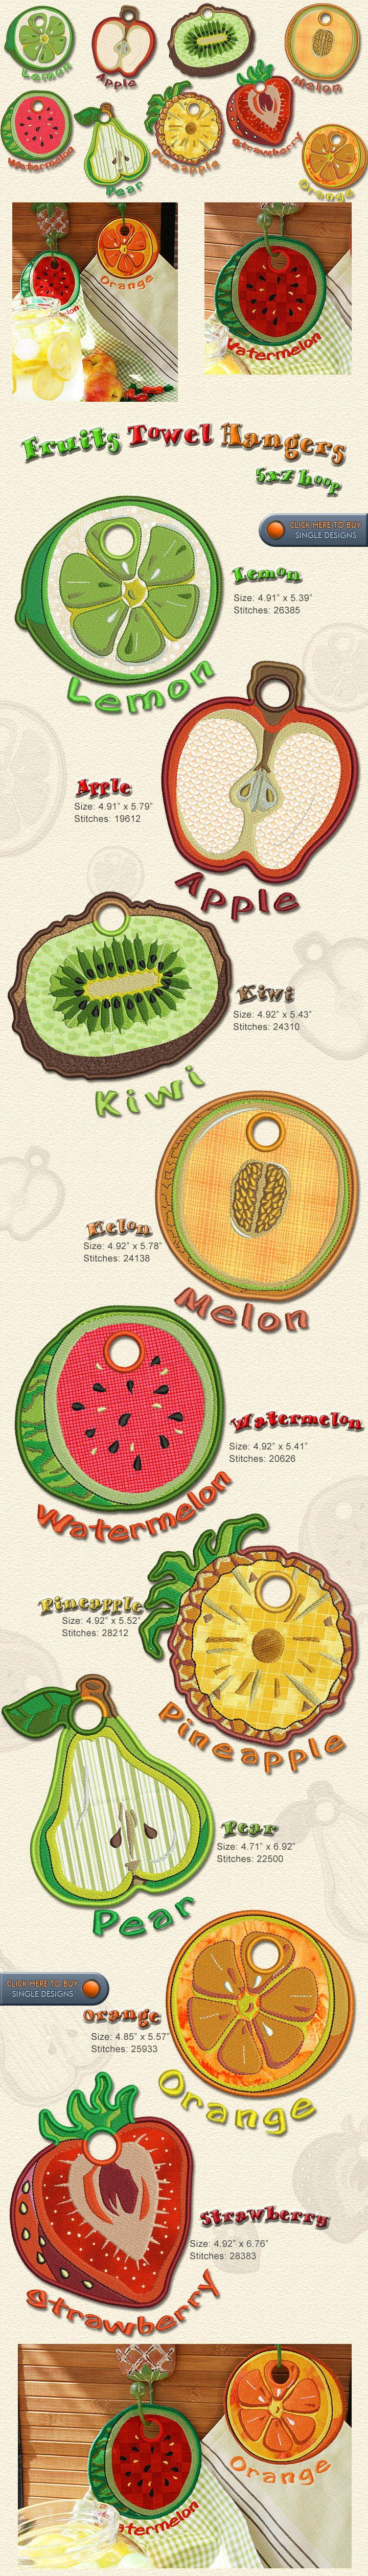 Towel,hangers,fruits,orange,watermelon,kitchen, in the hoop, Embroidery Designs Free Embroidery Design Patterns